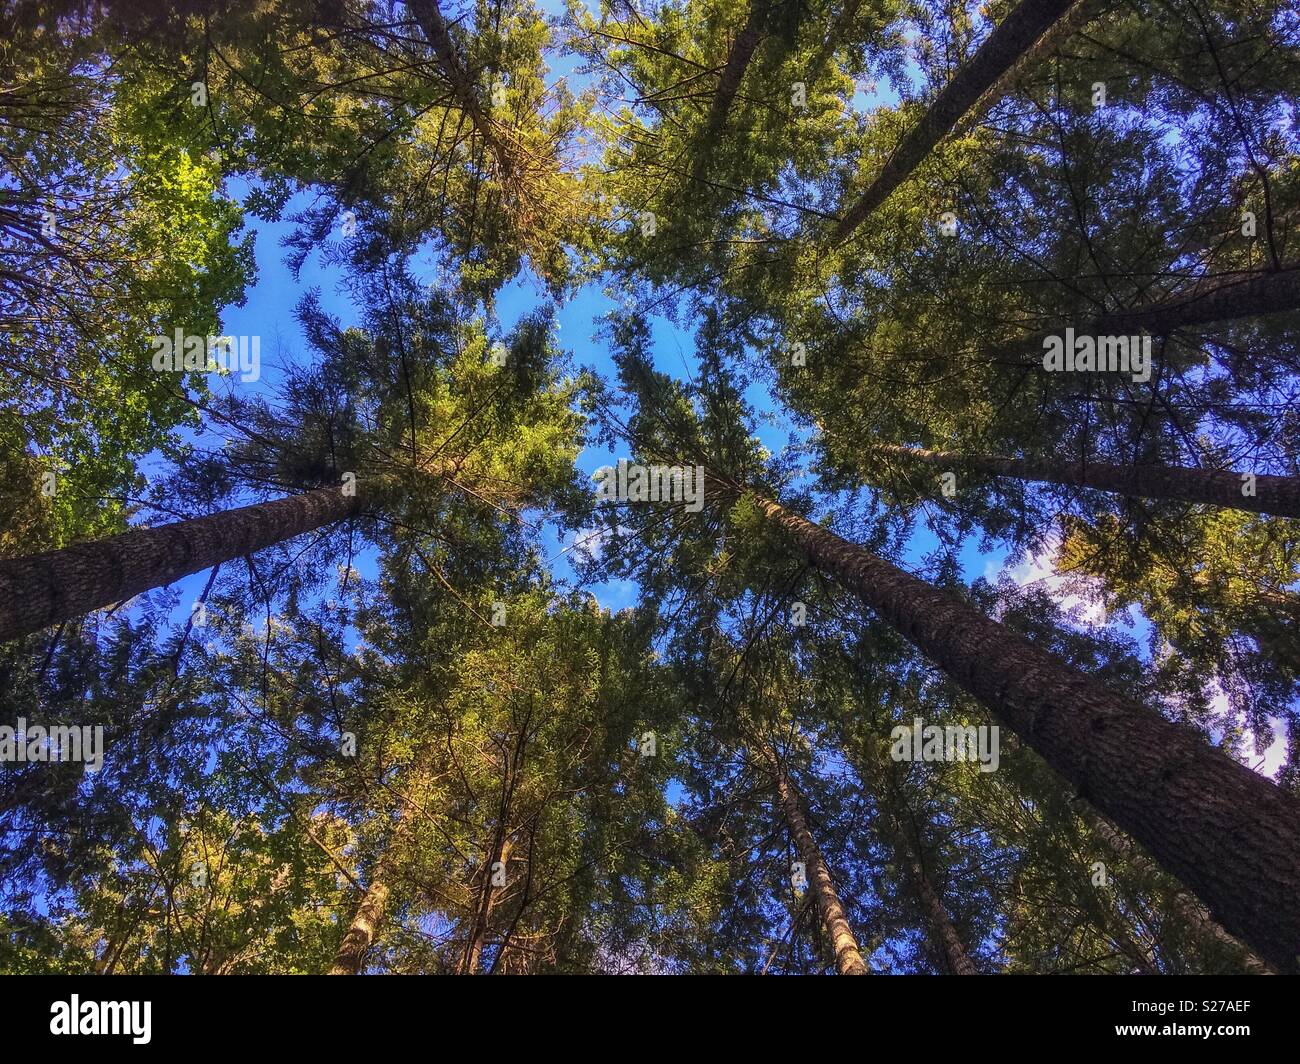 Looking up at the canopy, giant spruces in the forest surrounding Lake Crescent, Olympic National Park, Washington State, USA. - Stock Image